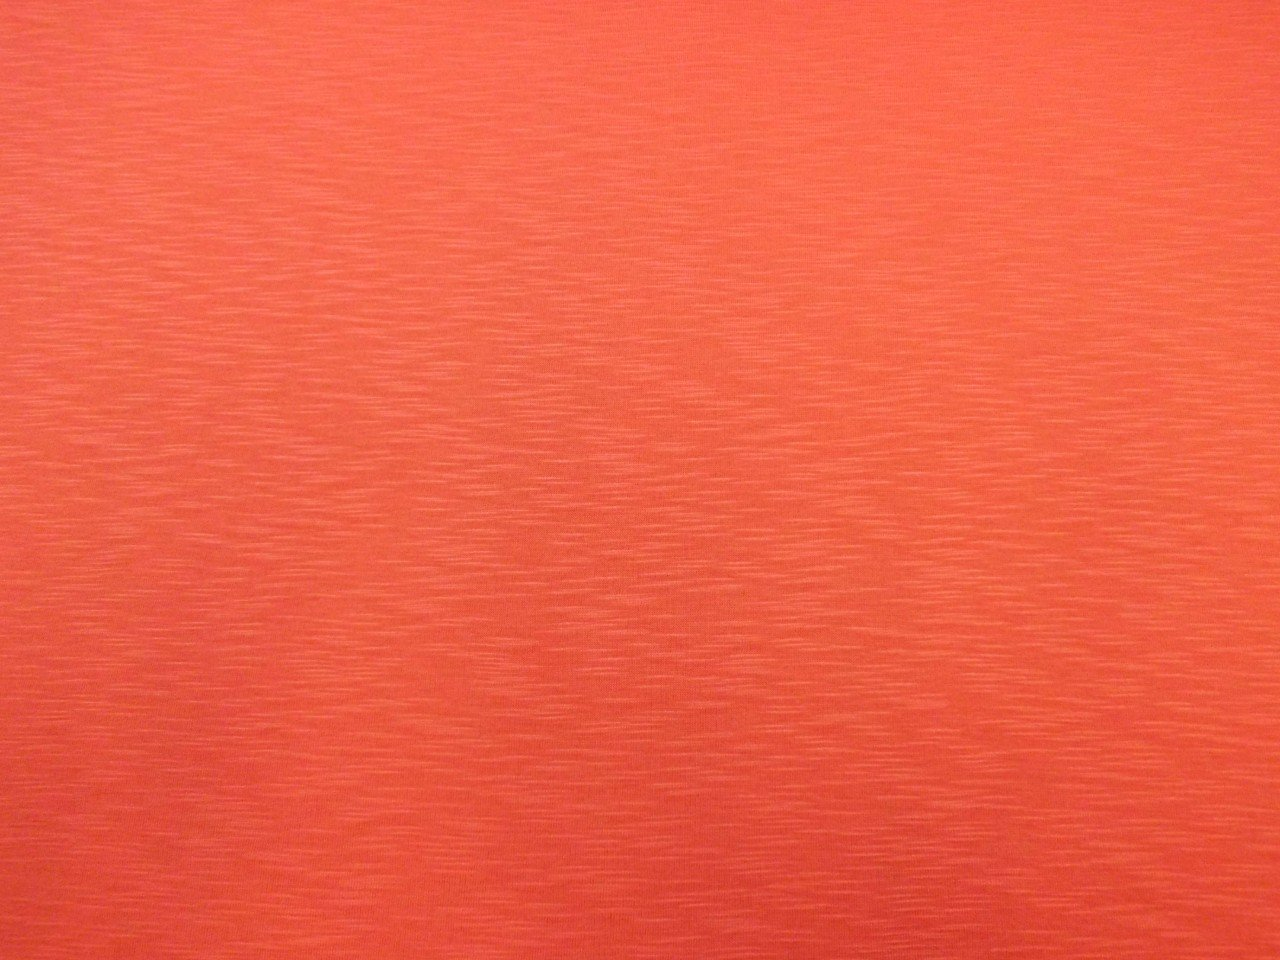 Rayon and Spandex Jersey Slub in Coral